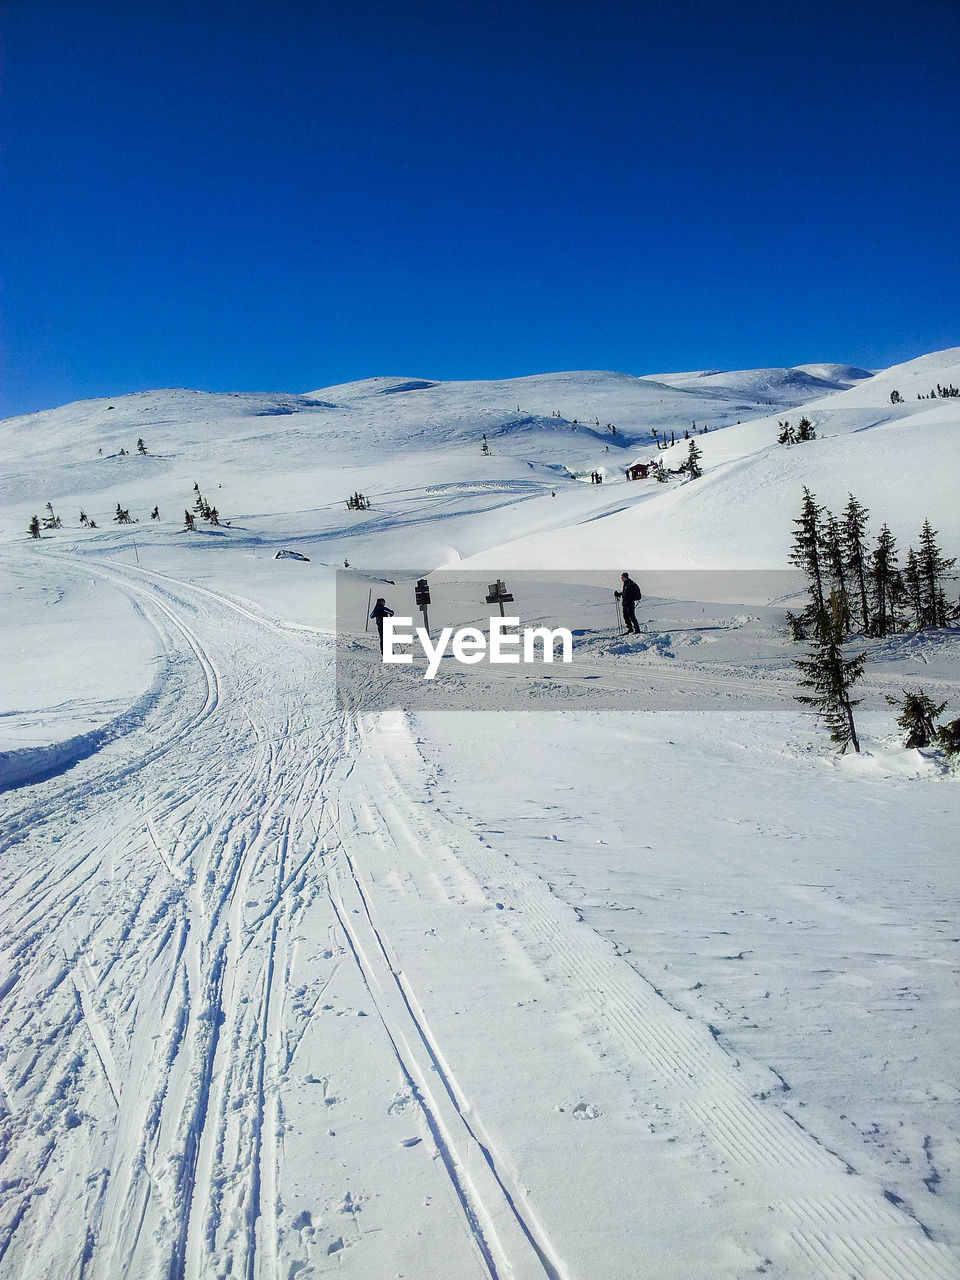 snow, winter, cold temperature, nature, white color, weather, beauty in nature, skiing, leisure activity, adventure, scenics, ski holiday, real people, tranquil scene, tranquility, sport, vacations, blue, mountain, day, outdoors, landscape, winter sport, snowcapped mountain, lifestyles, frozen, sunlight, tire track, sky, clear sky, tree, snowboarding, ski lift